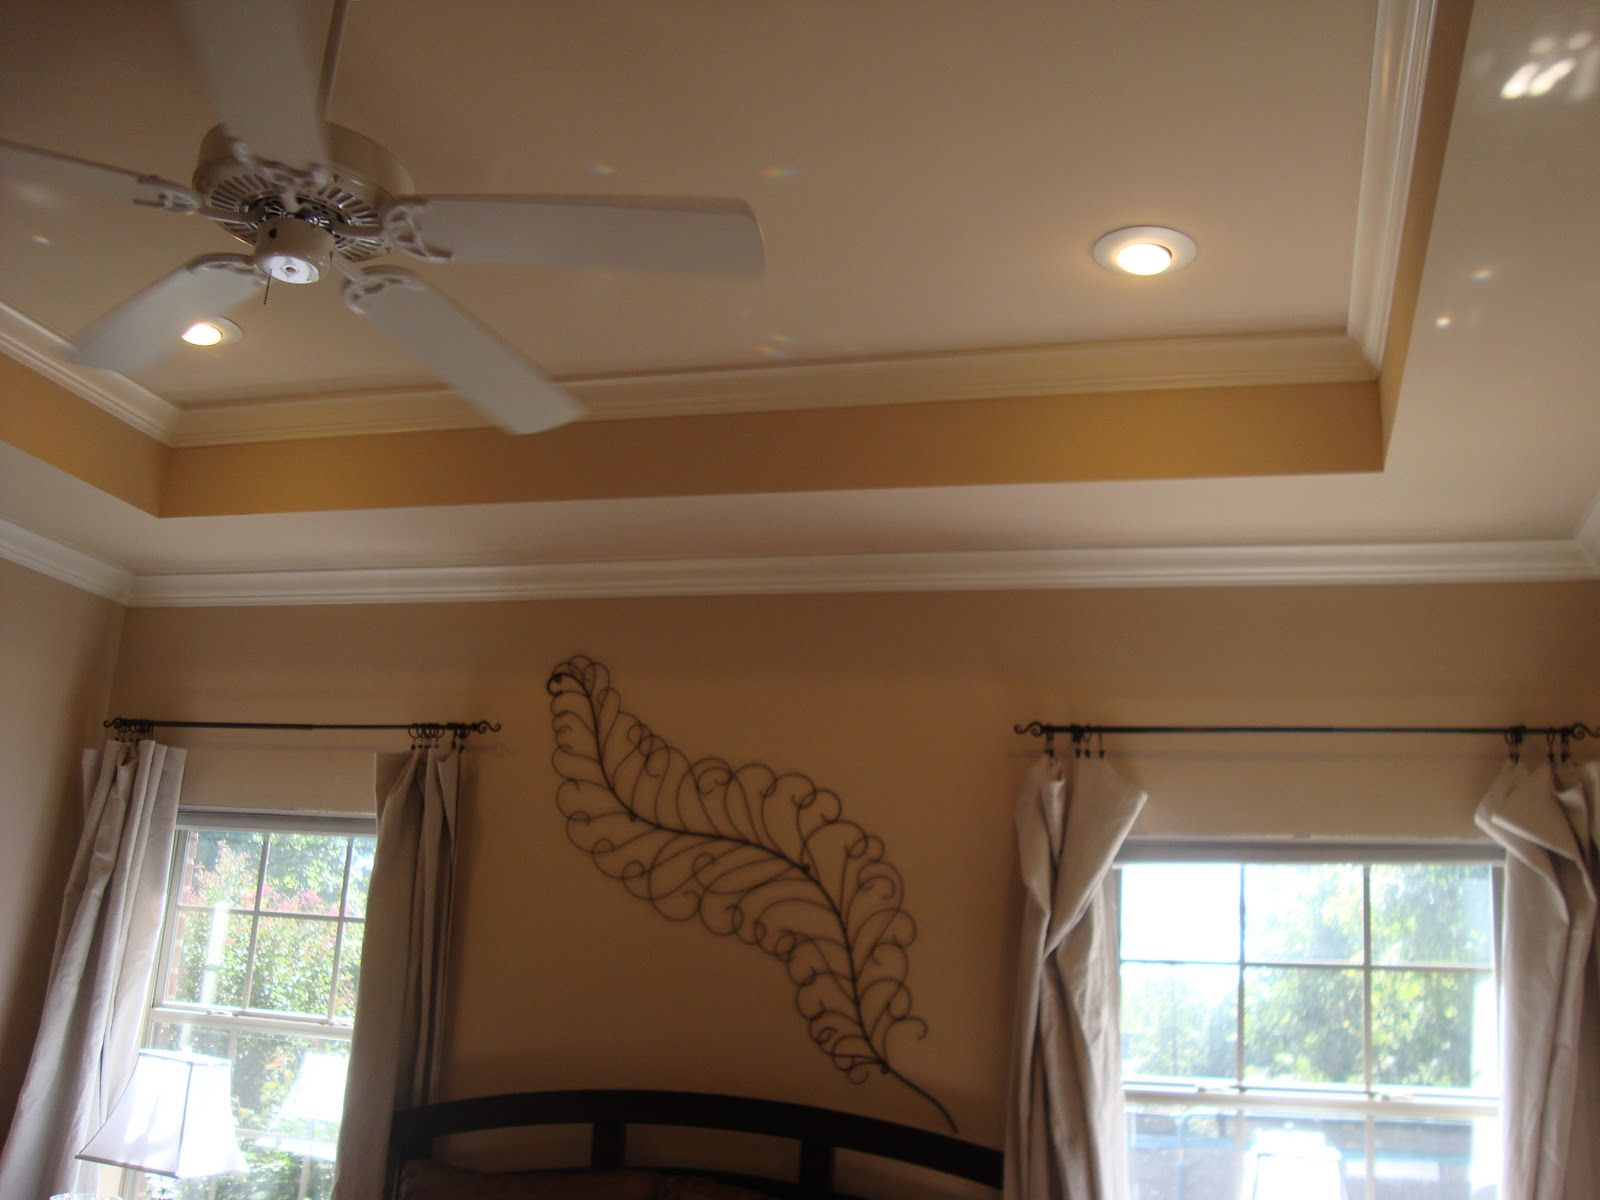 bedroom tray ceiling molding/painting ideas | New home ...